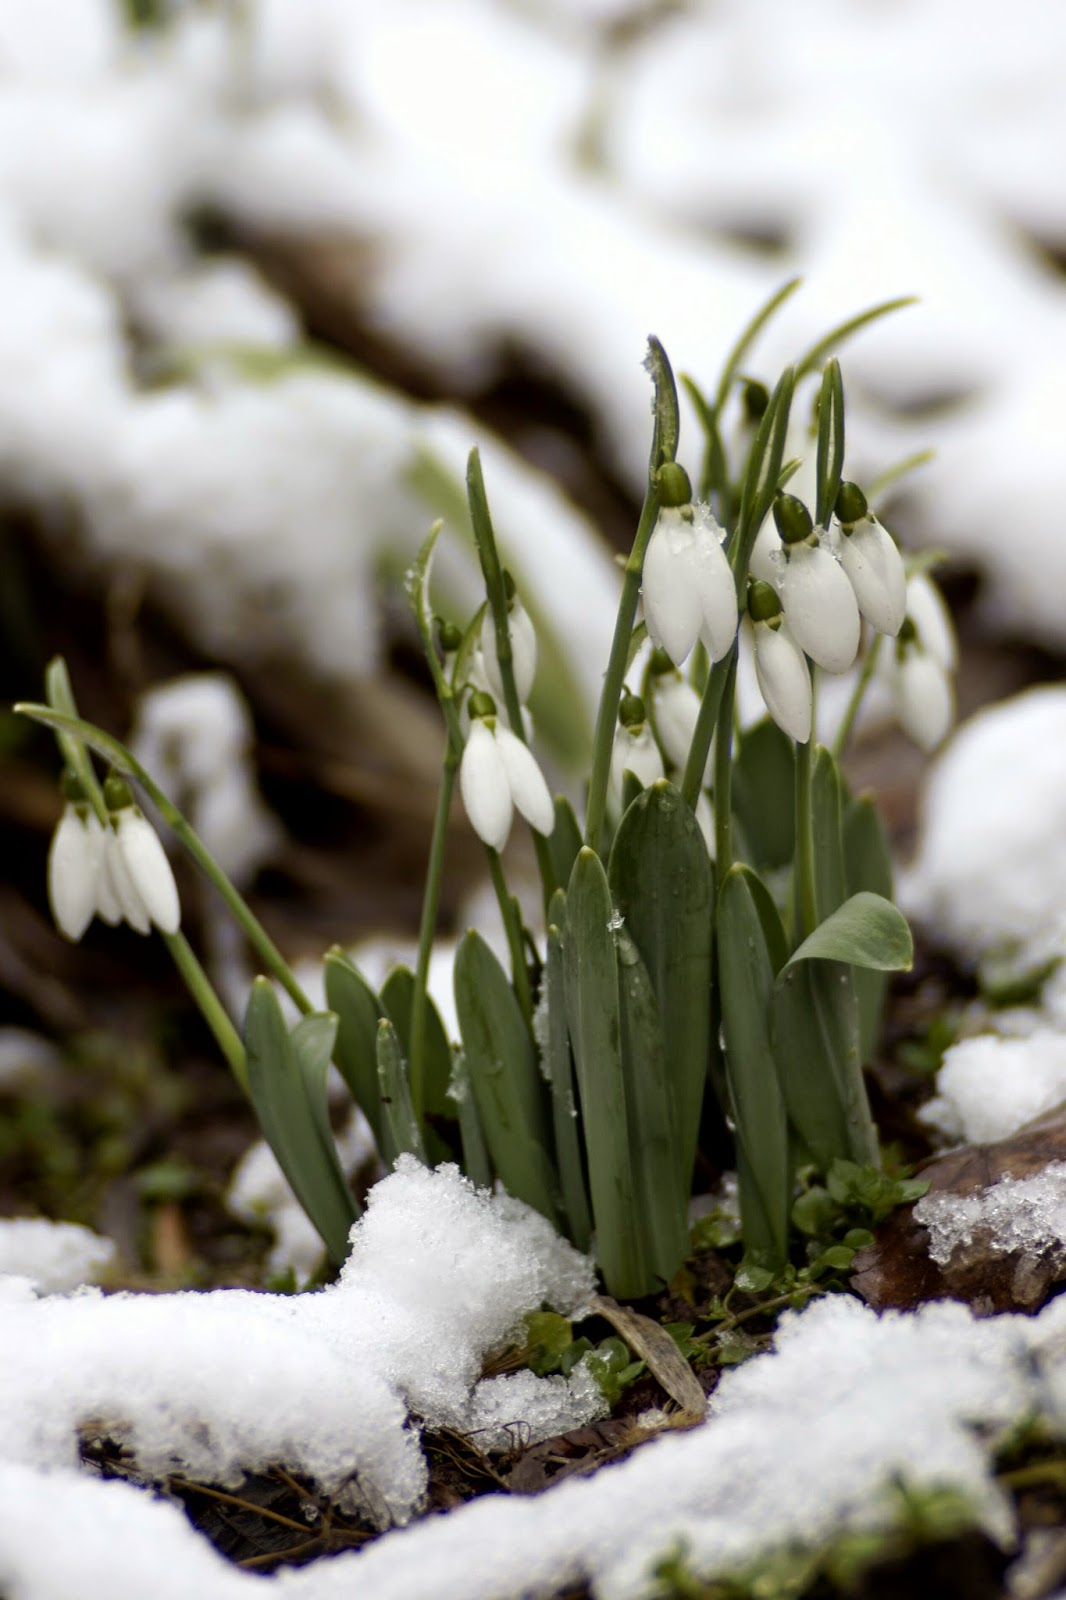 Wishing away winter and pining for spring